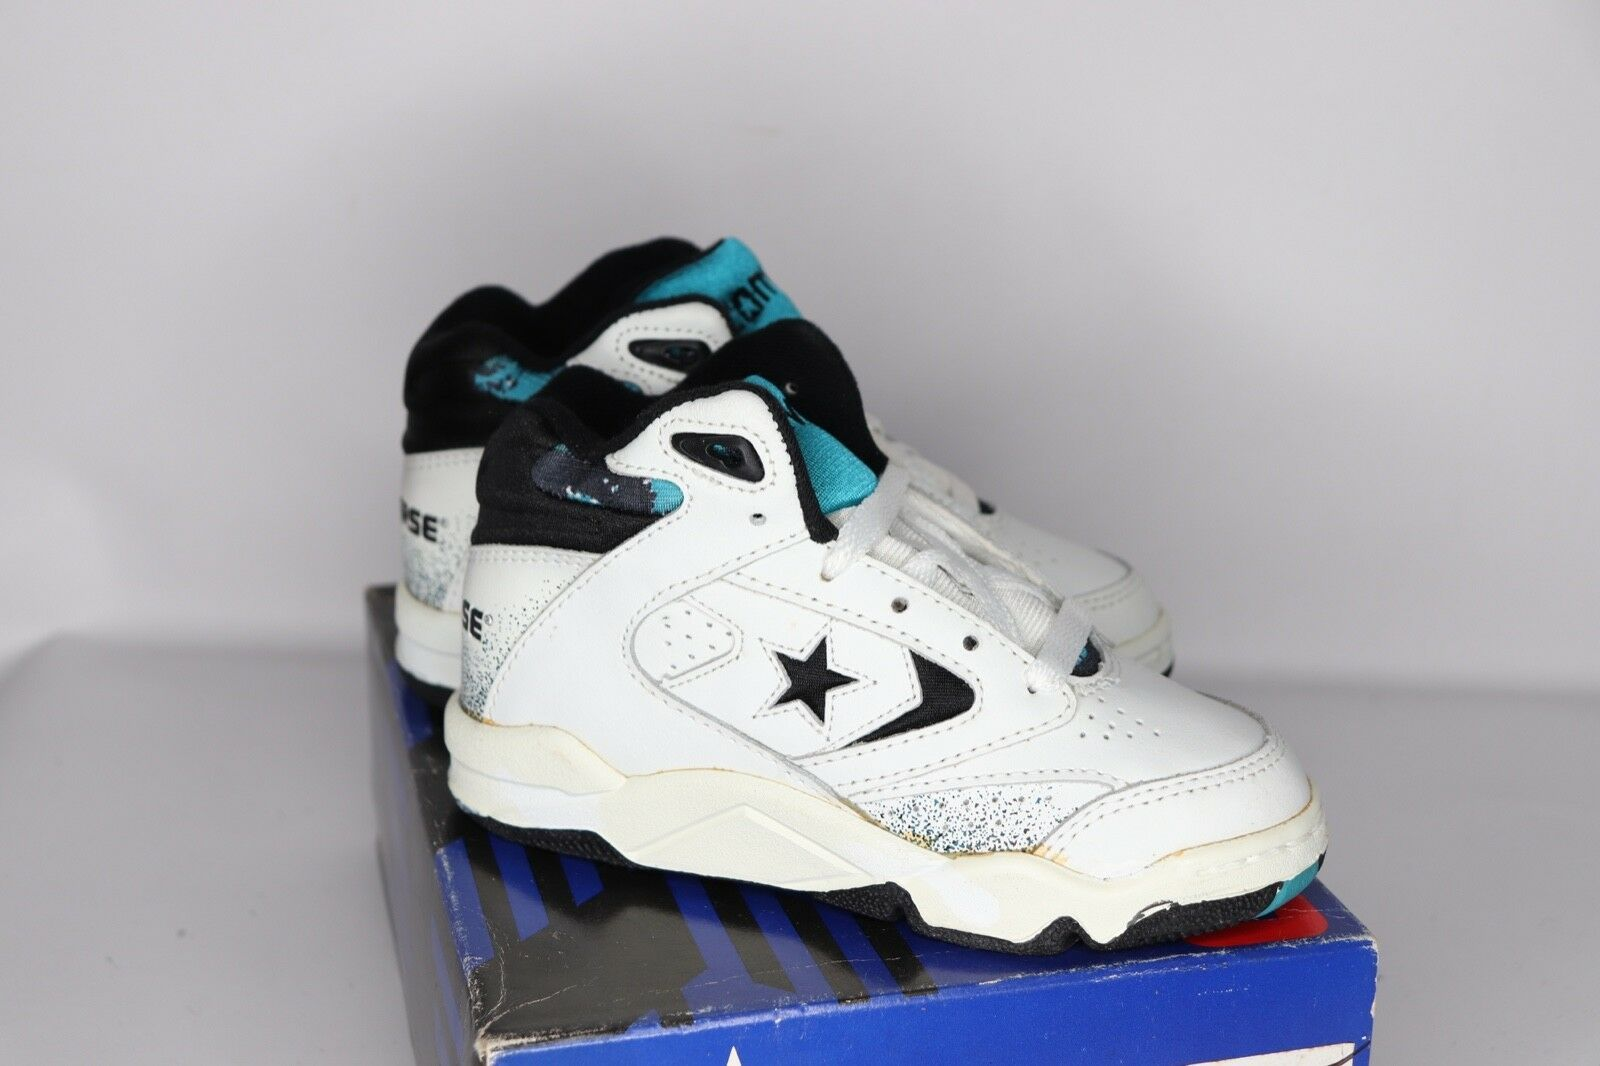 Vtg 90s New Converse Youth 10.5 Power Game Lea Mid Basketball Shoes White Teal